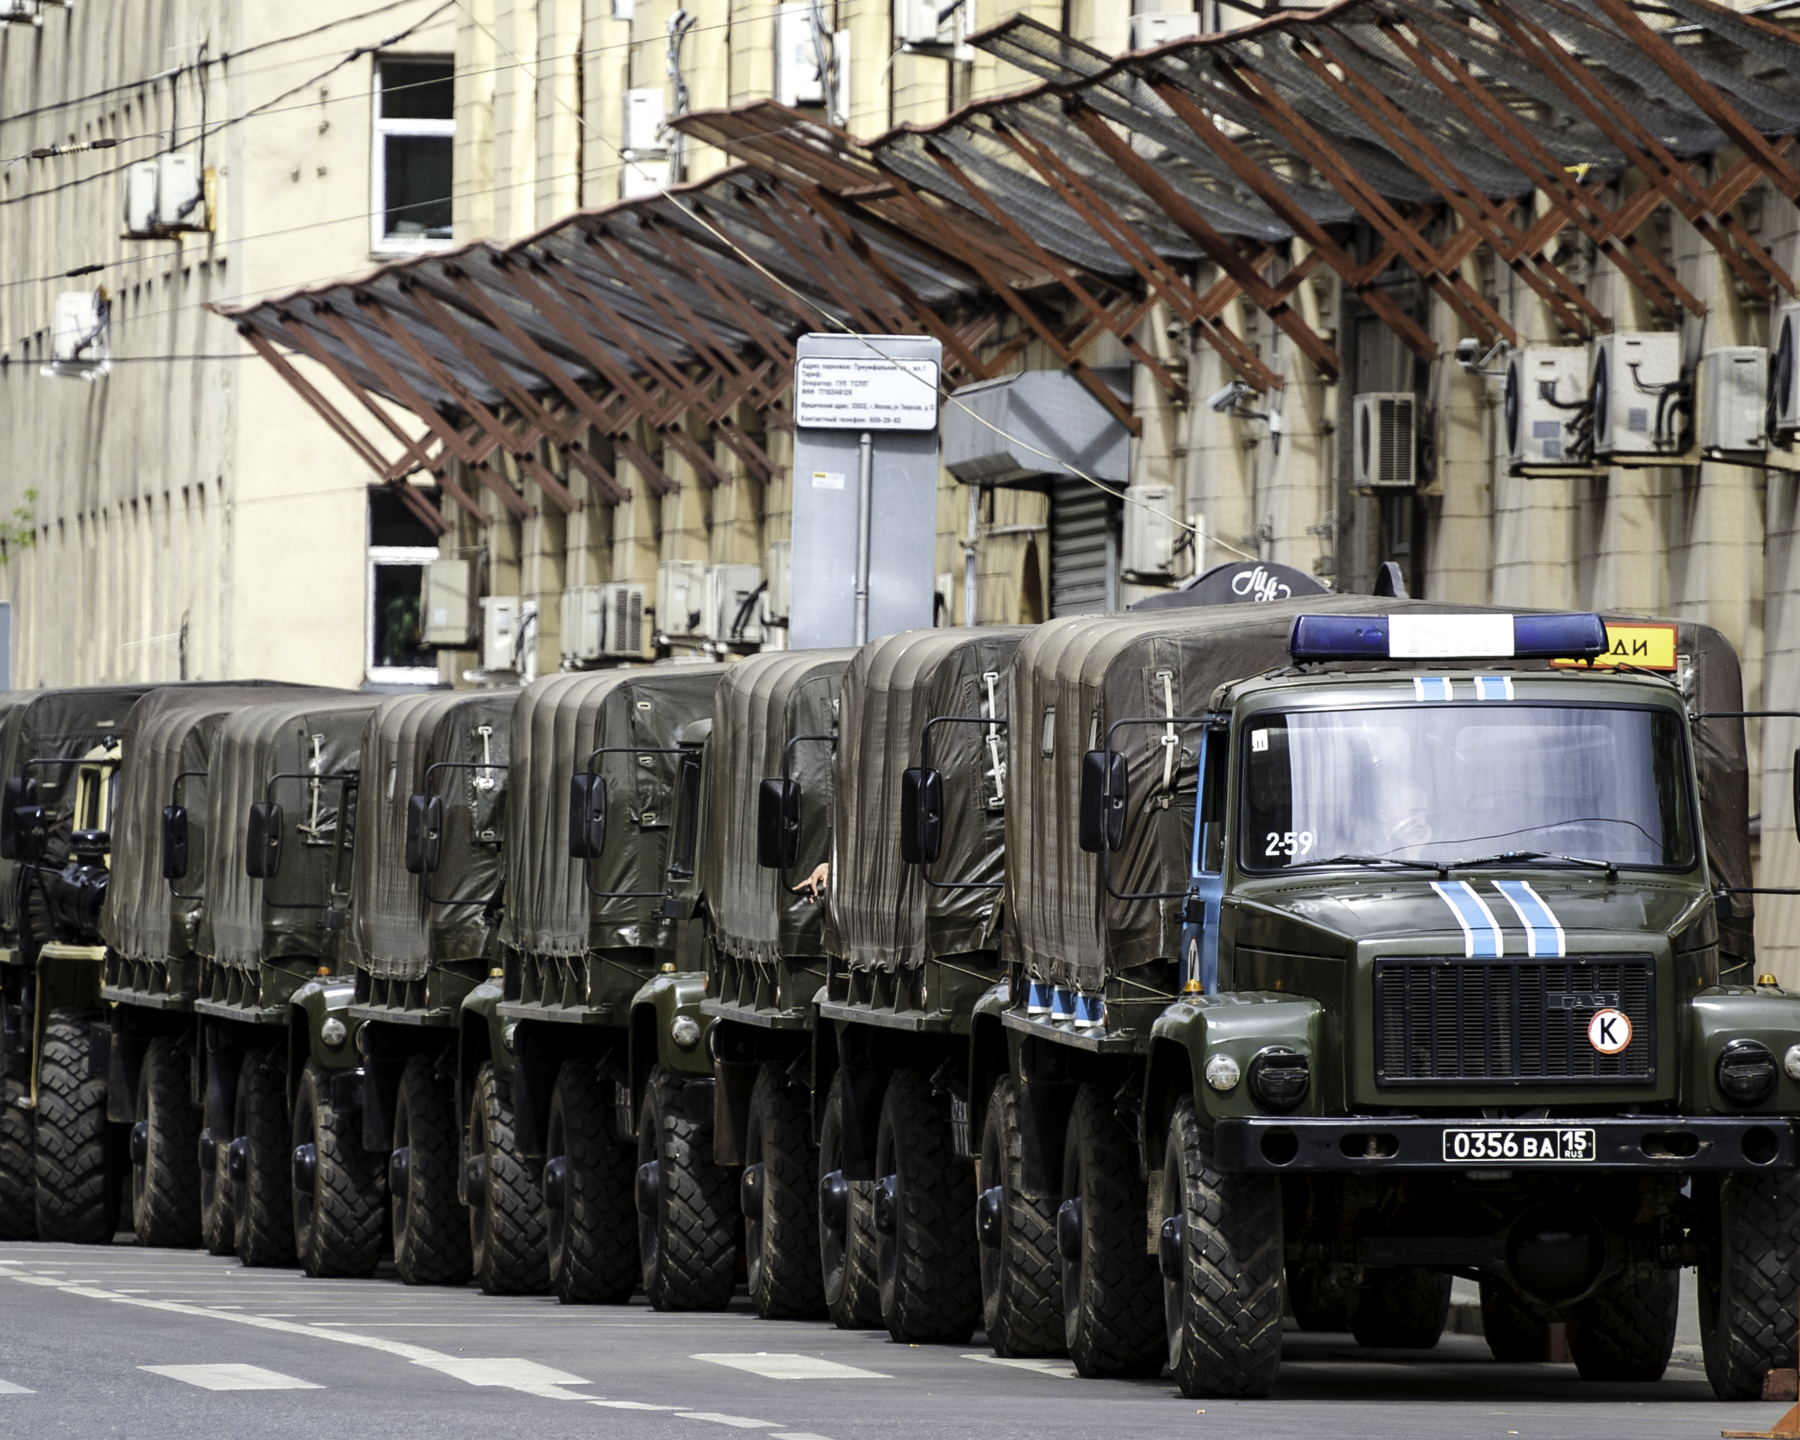 Strategy-31 for Freedom of Assembly (Not Permitted): Uncivil Response, Triumfalnaya Square